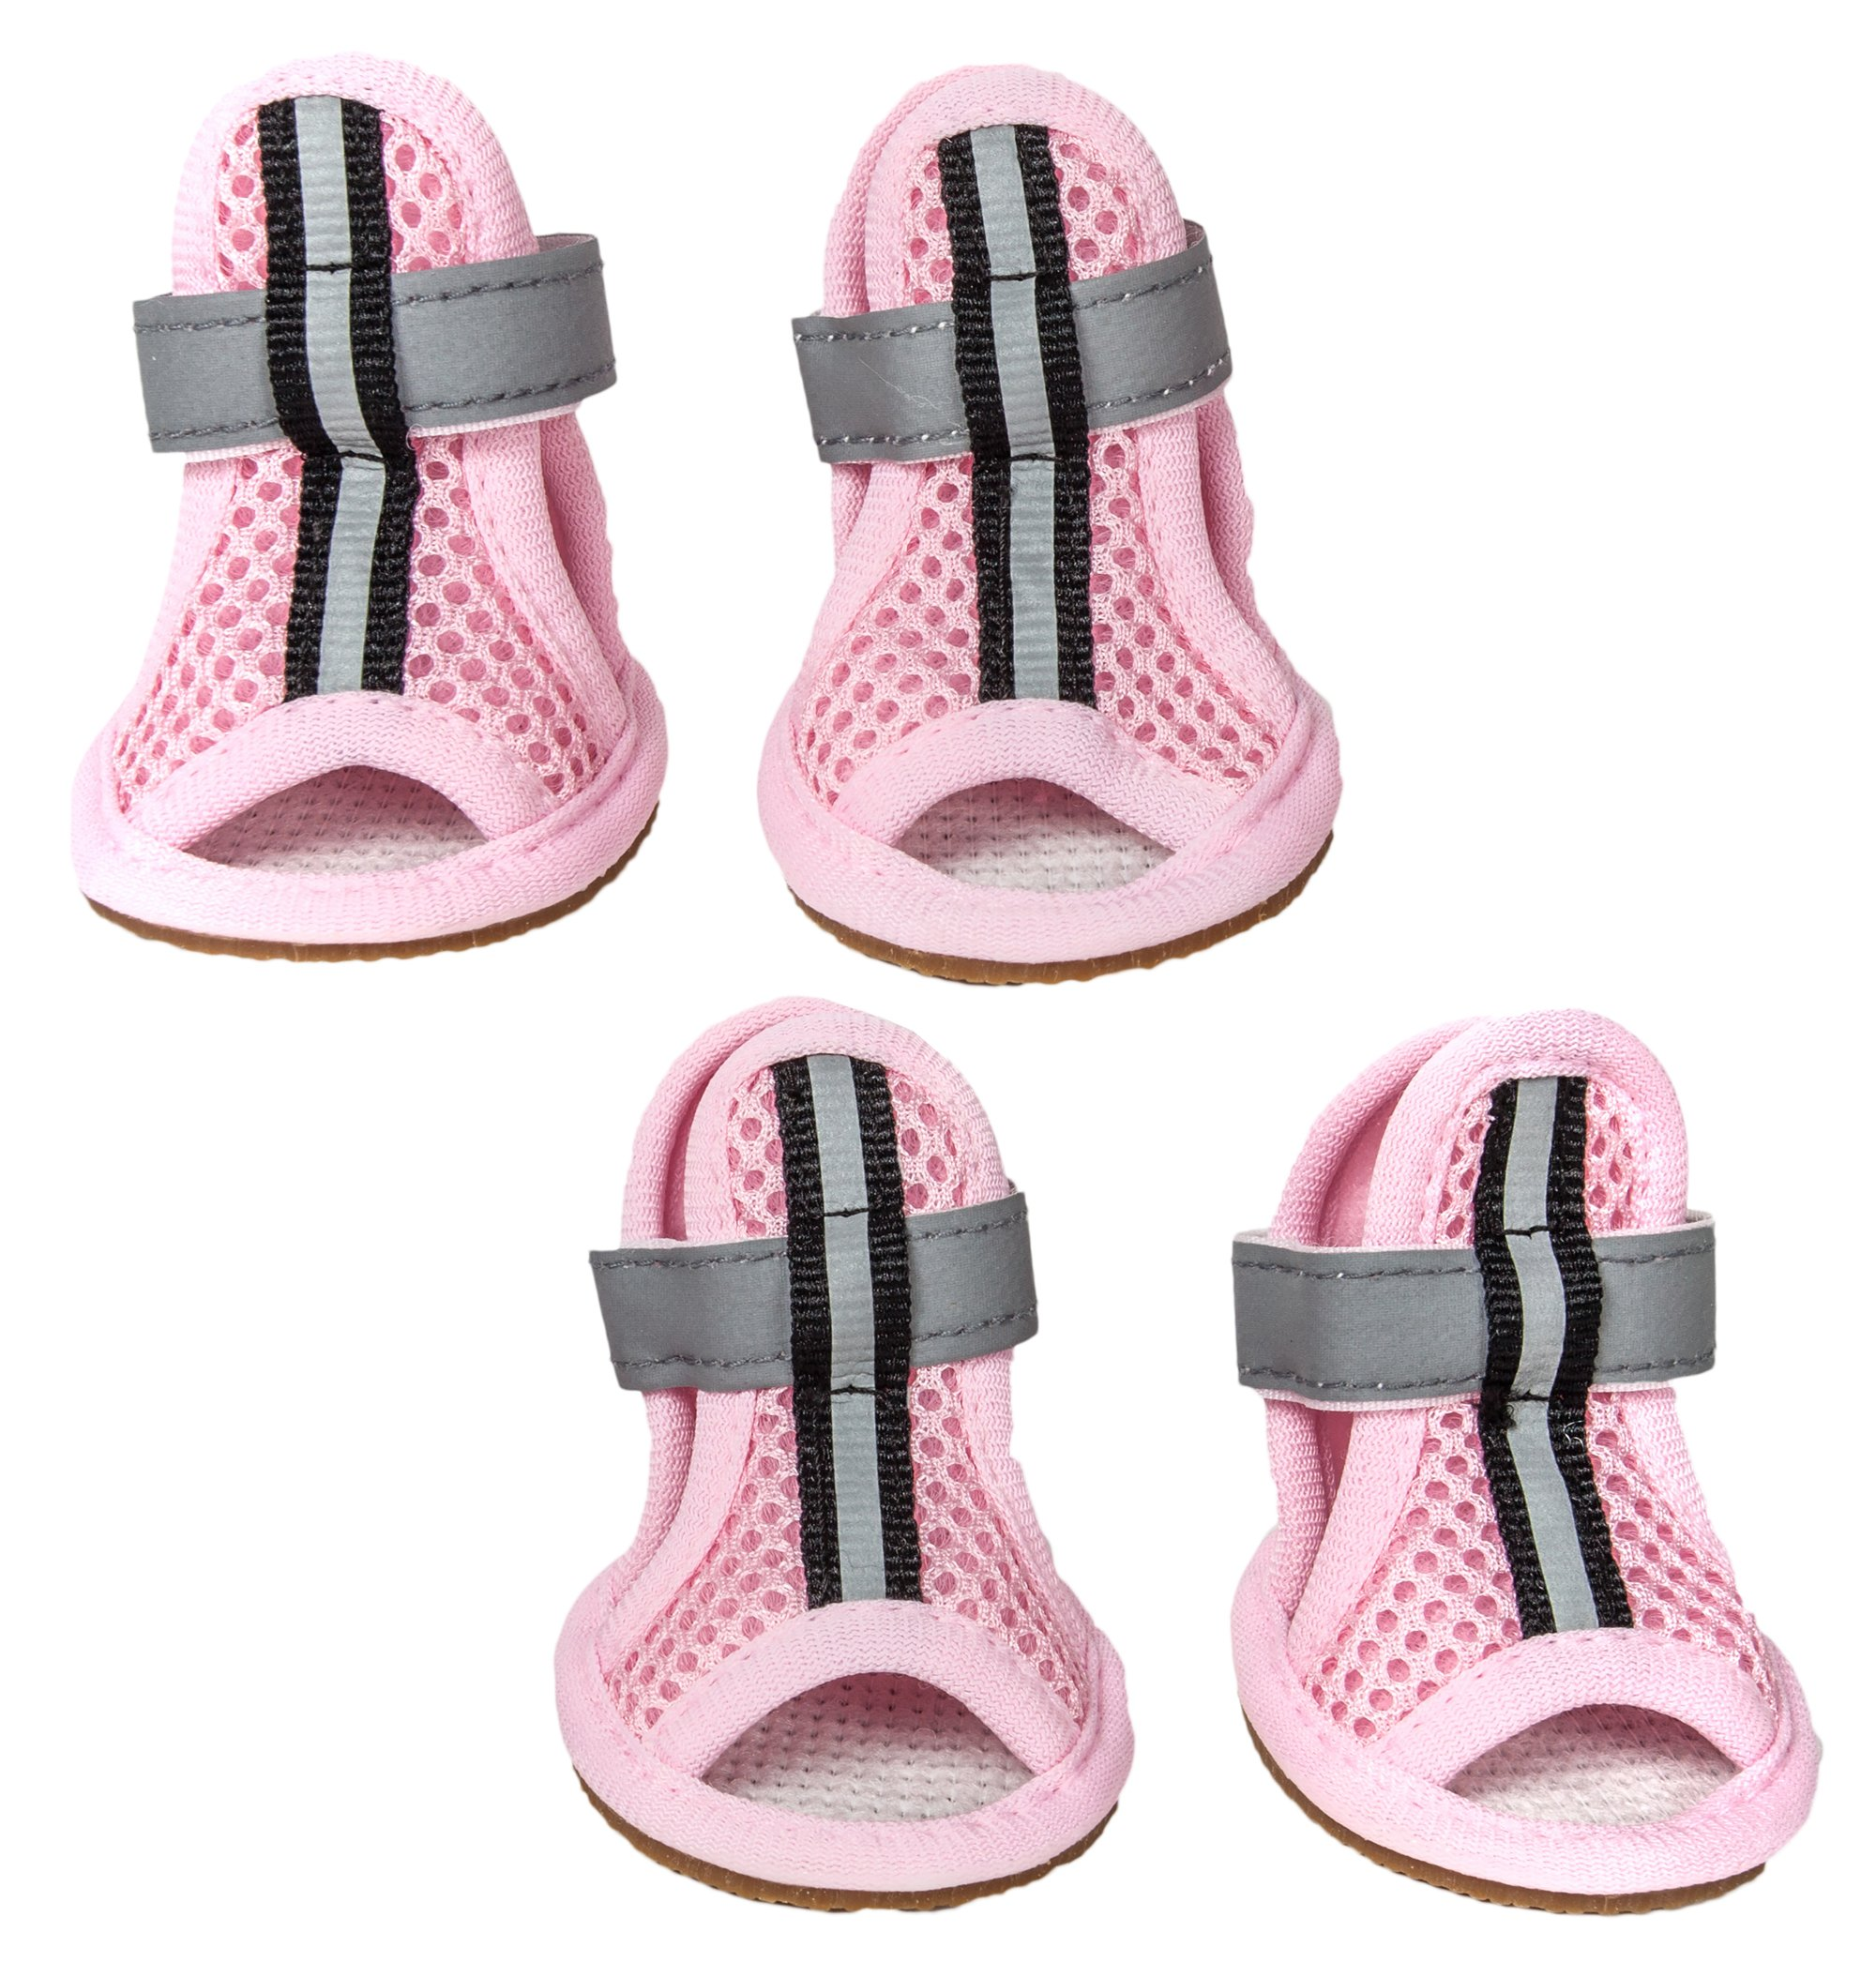 Pet Life Sporty Supportive' Summer mesh Pet Dog Sandals Shoes Booties- Set of 4, Small, Pink